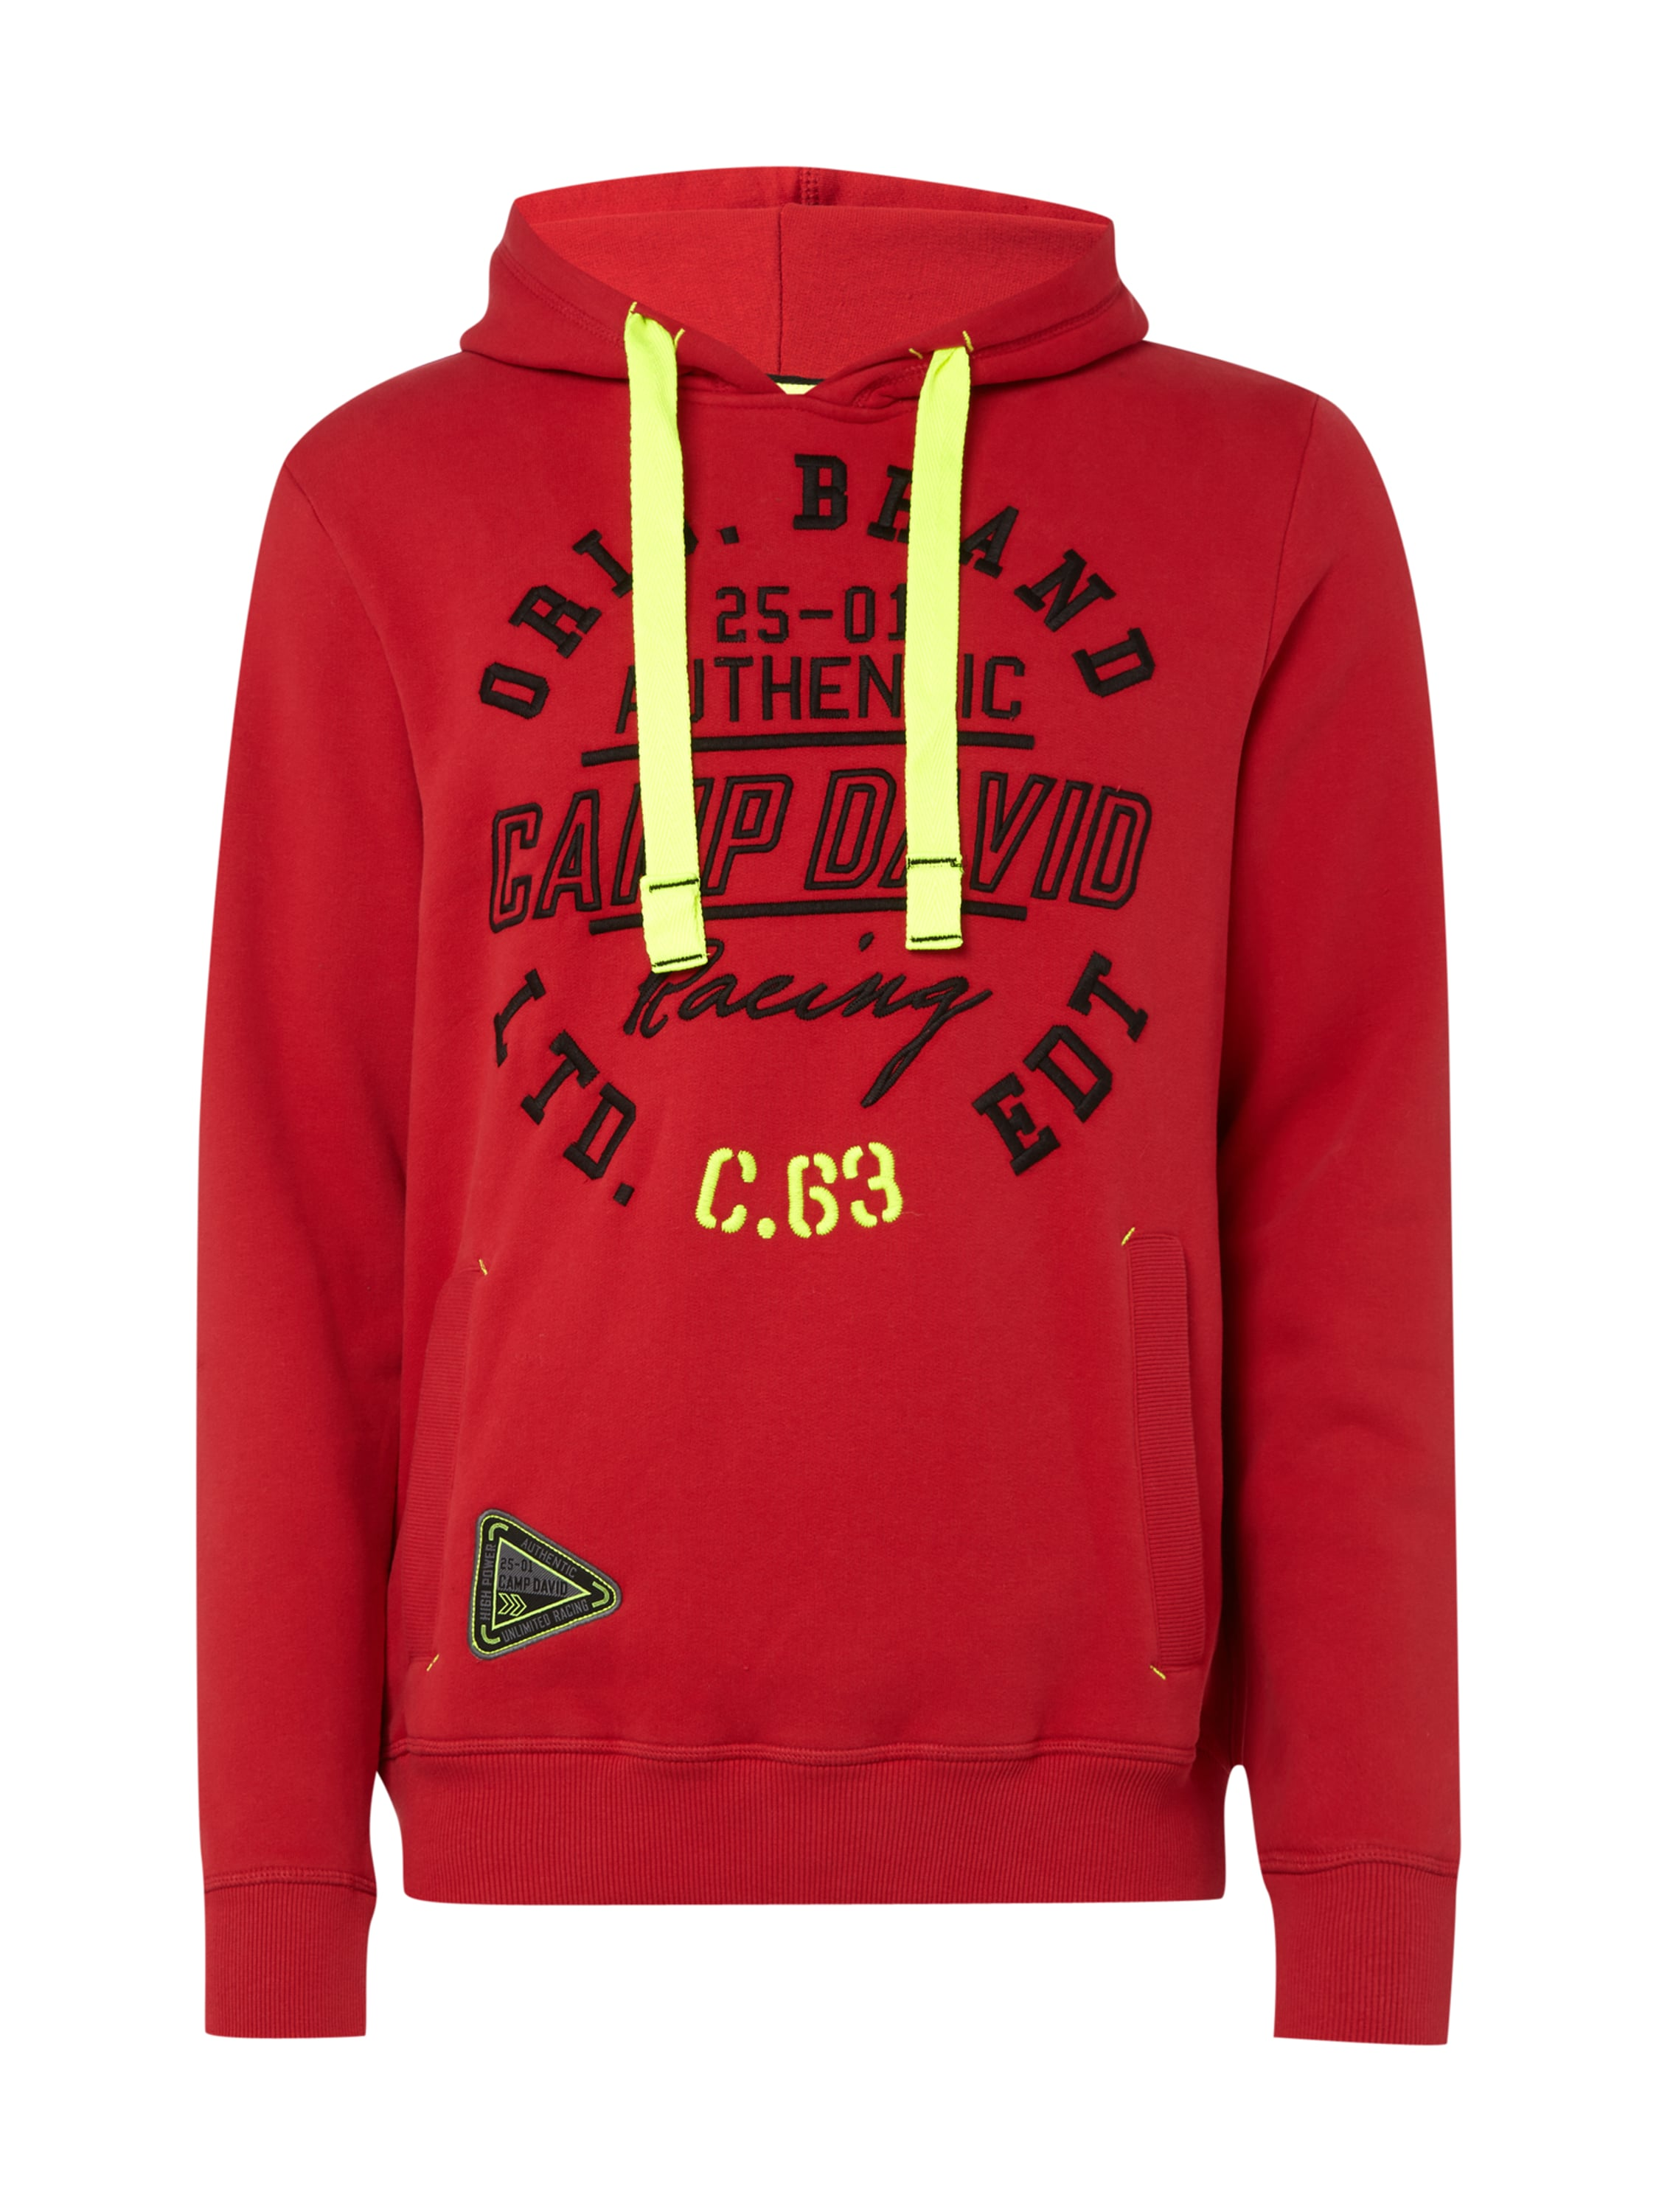 camp david hoodie mit gro er logo stickerei in rot online kaufen 9571750 p c online shop. Black Bedroom Furniture Sets. Home Design Ideas